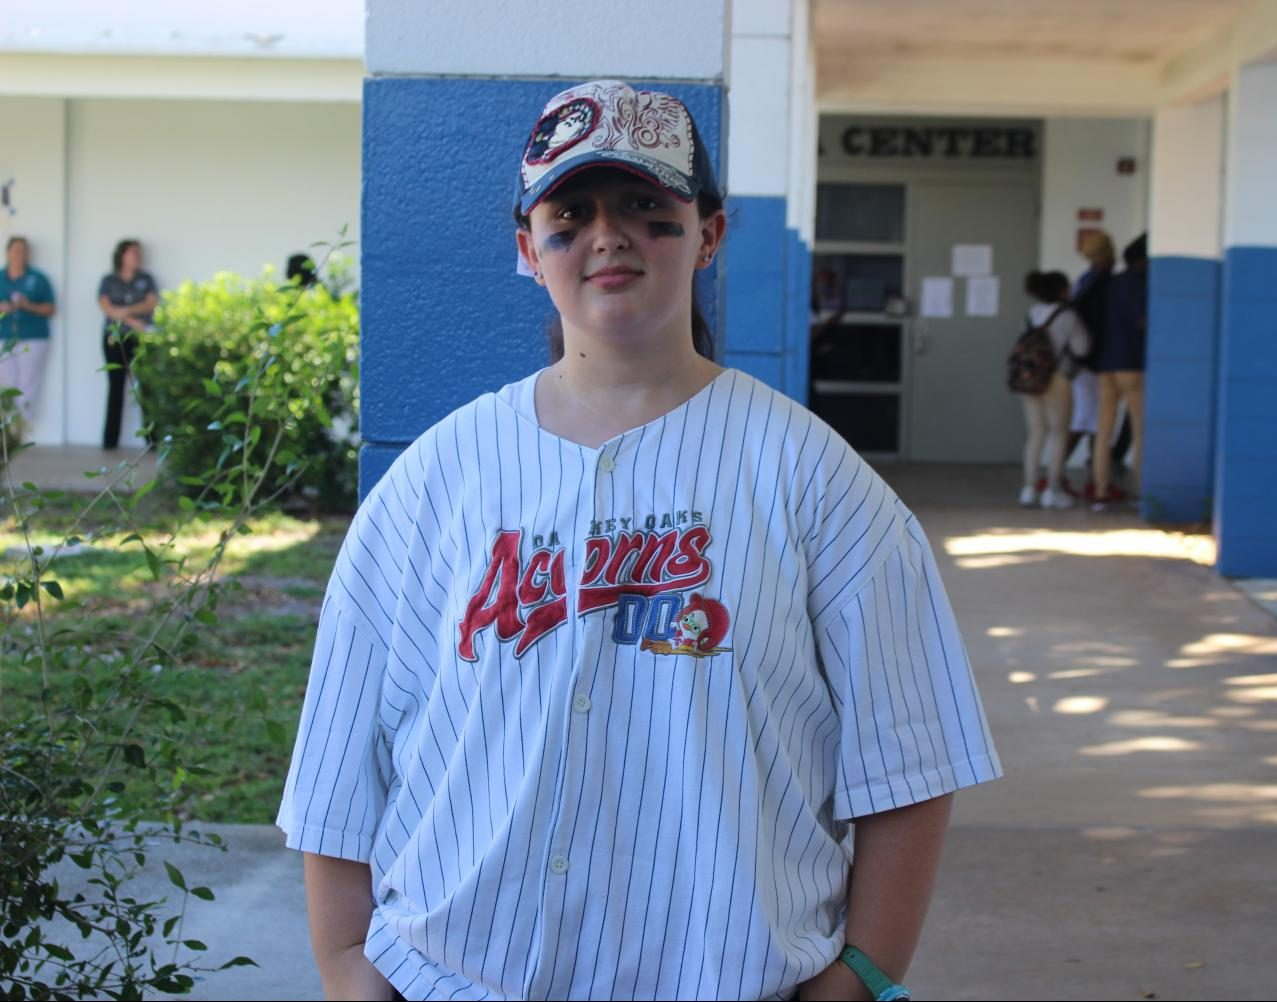 SPORTS GEAR DAY: Junior Dakota Sands celebrates the first day of Spirit Week by donning an Oakey Oaks Acorns baseball jersey from the 2005 Disney film